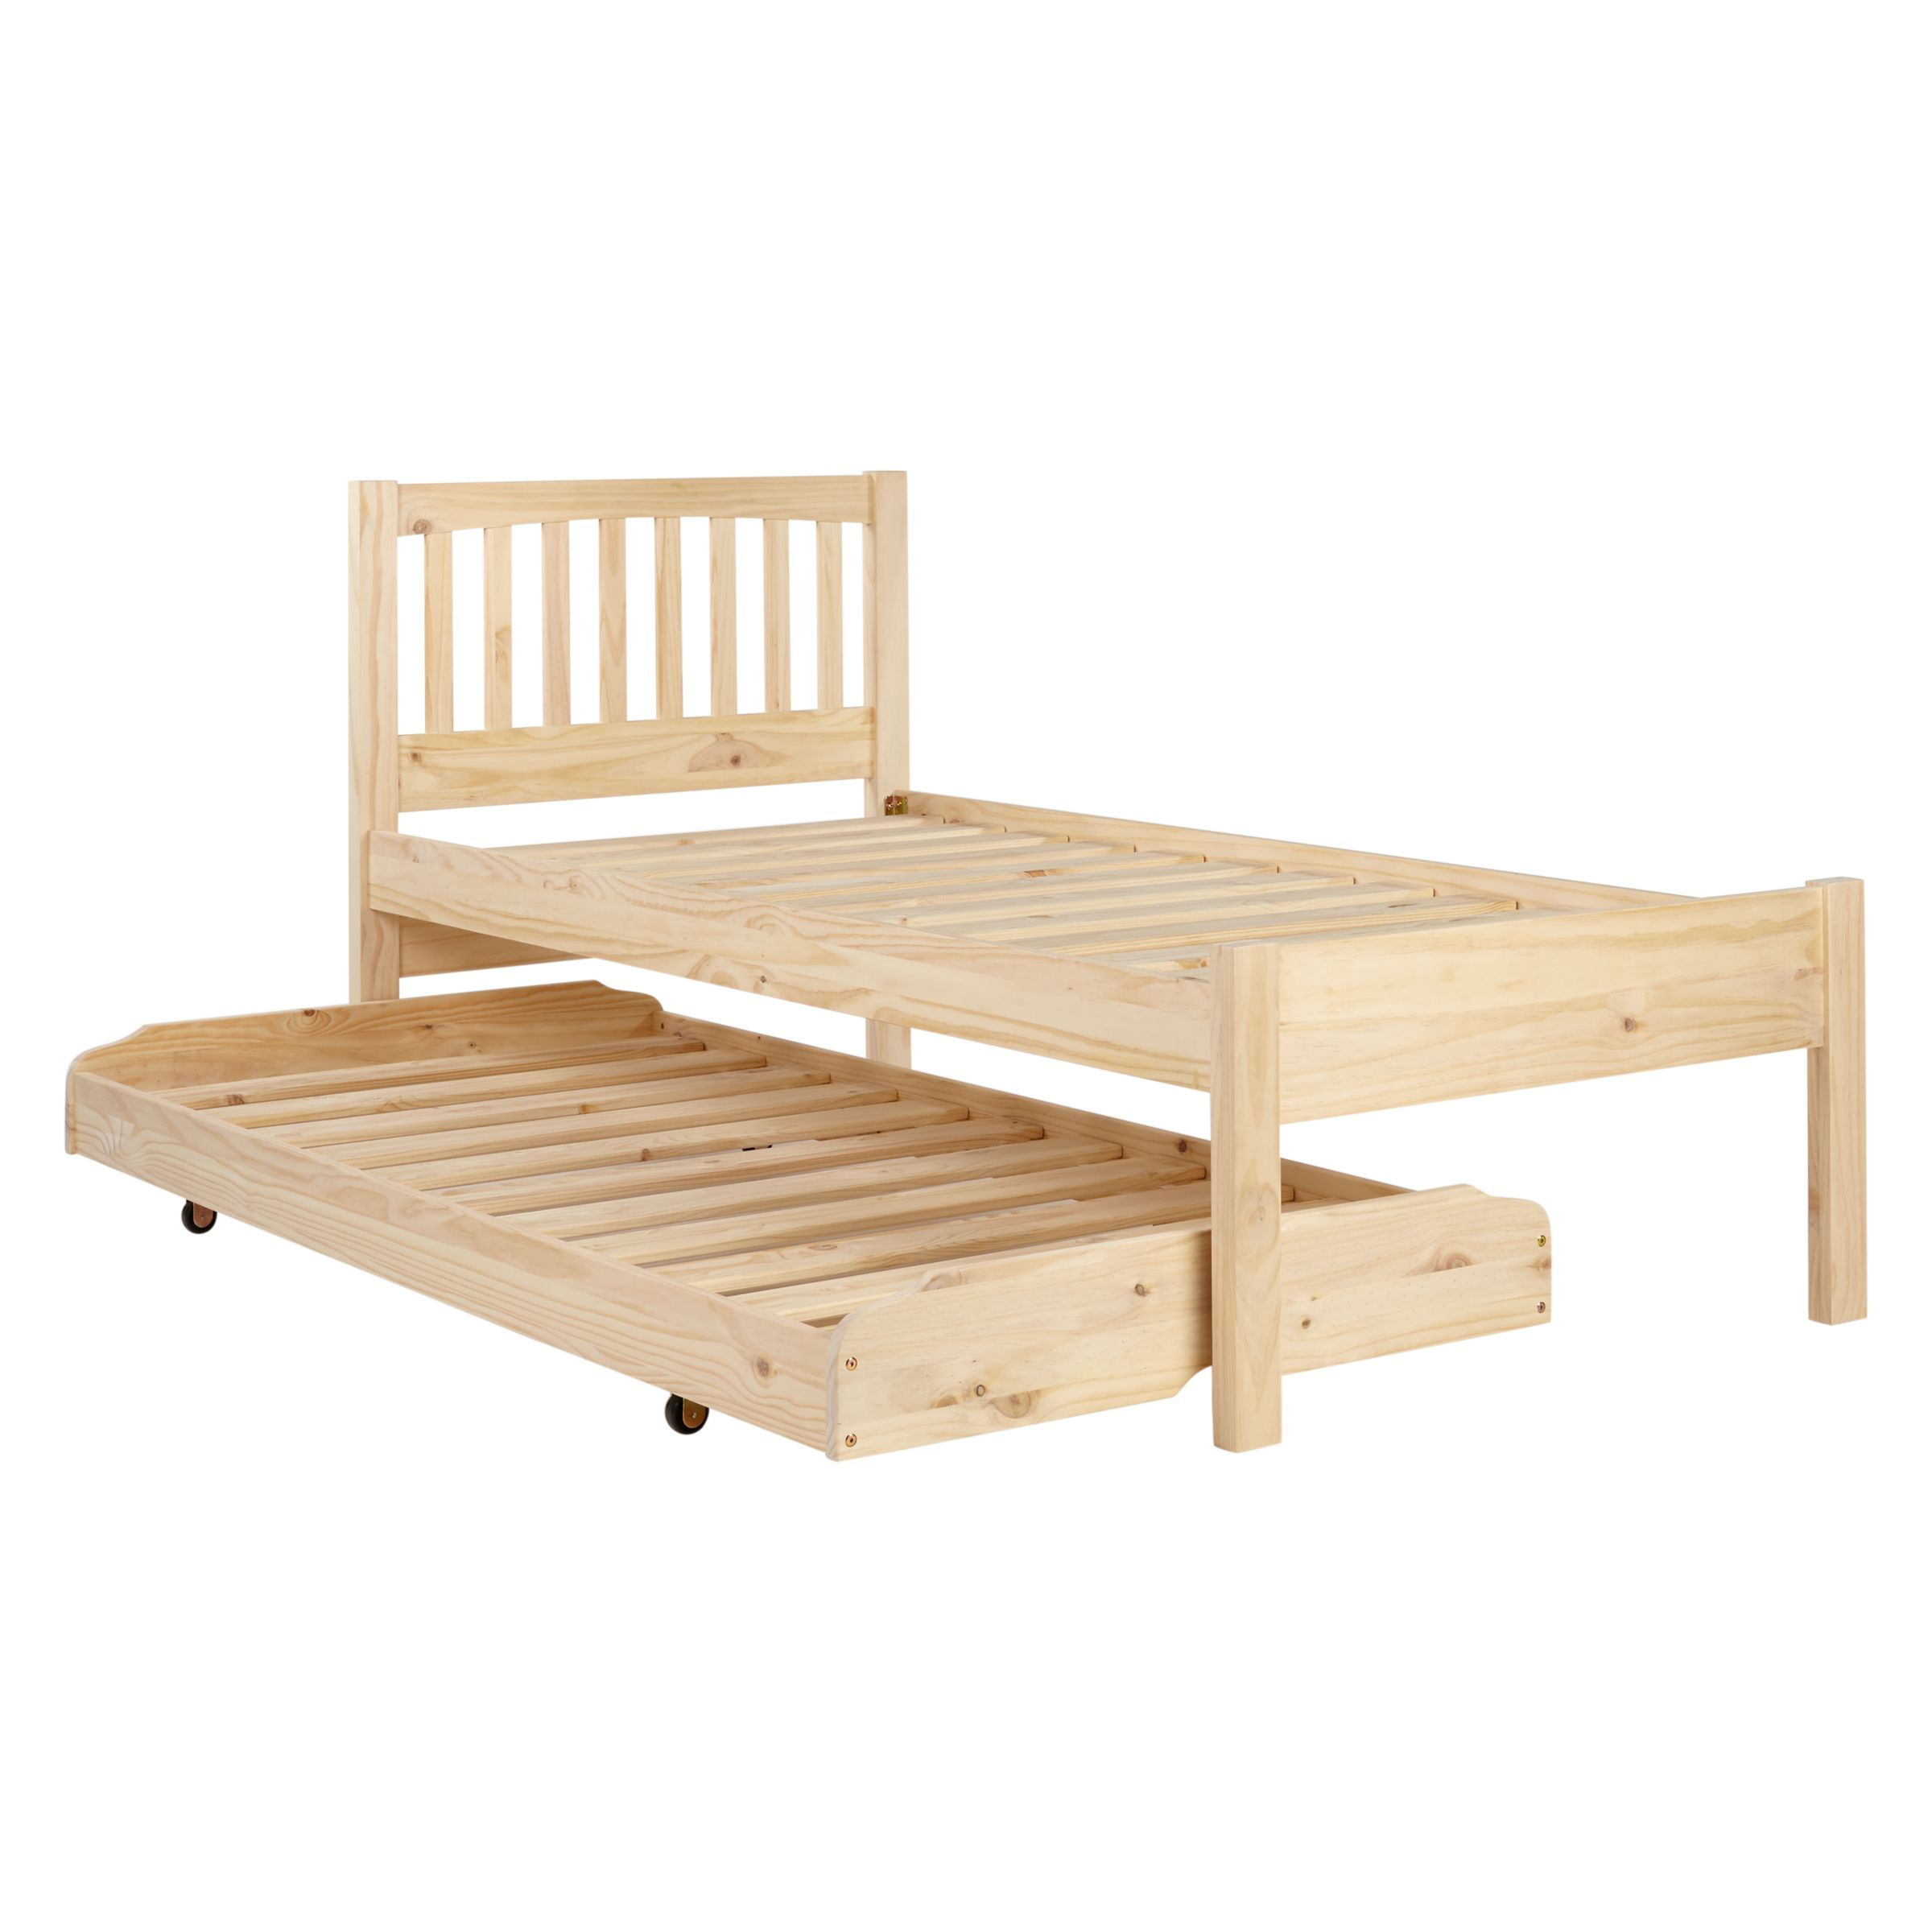 John Lewis Woodstock Raw Pin Trundle Guest Bed